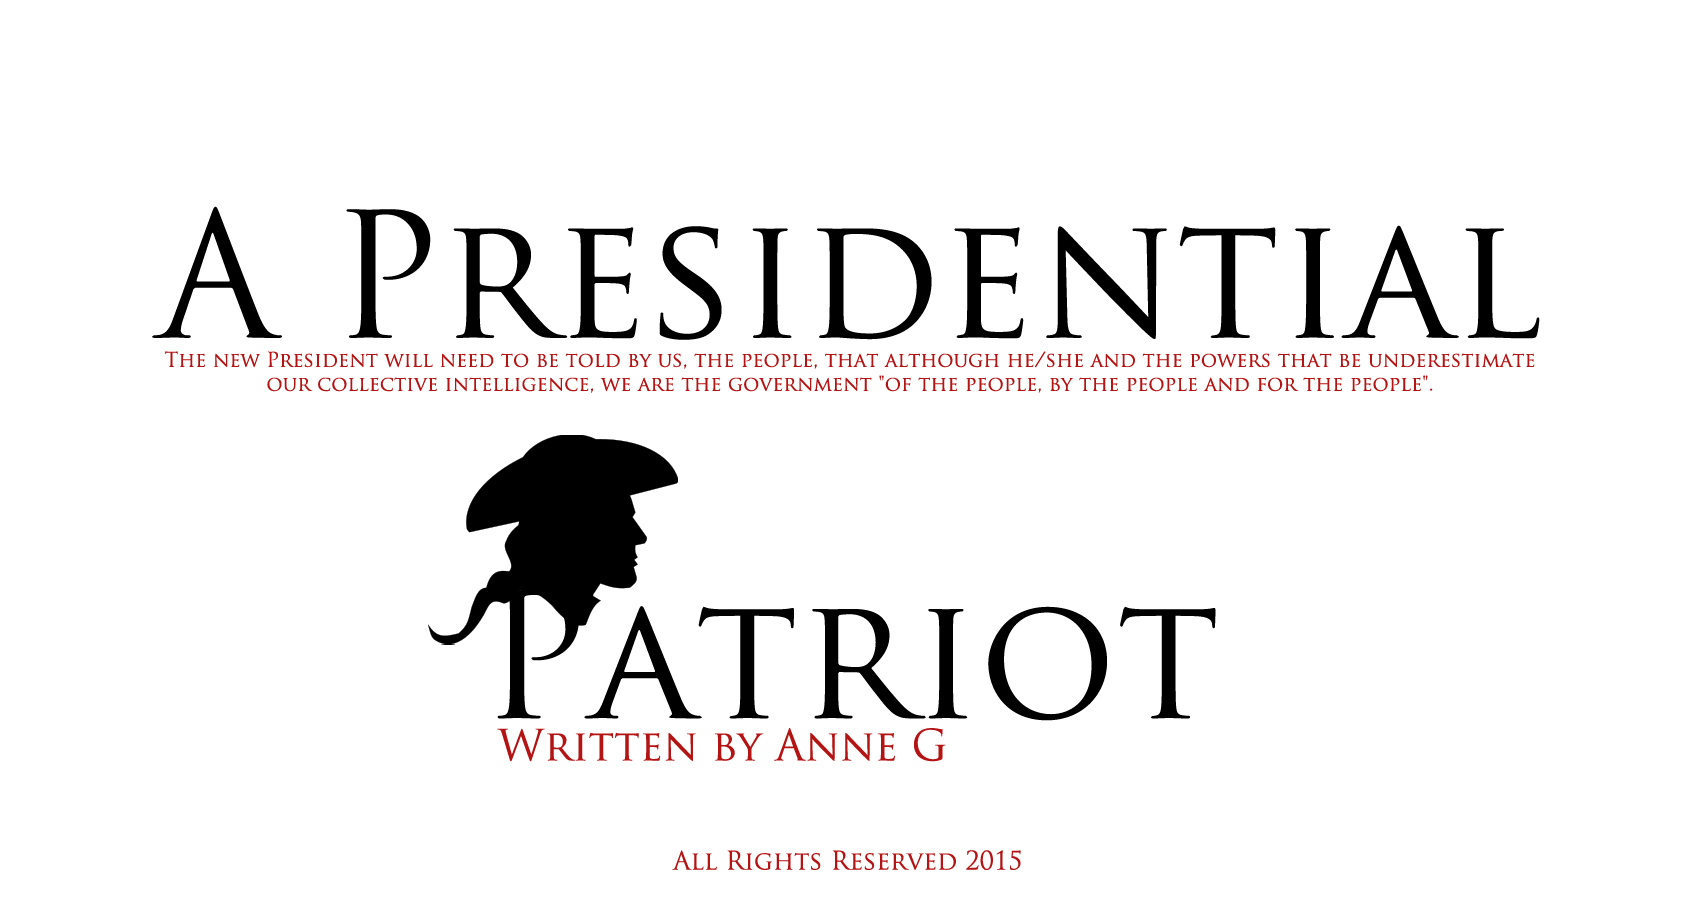 spillwords.com A presidential Patriot by Anne G